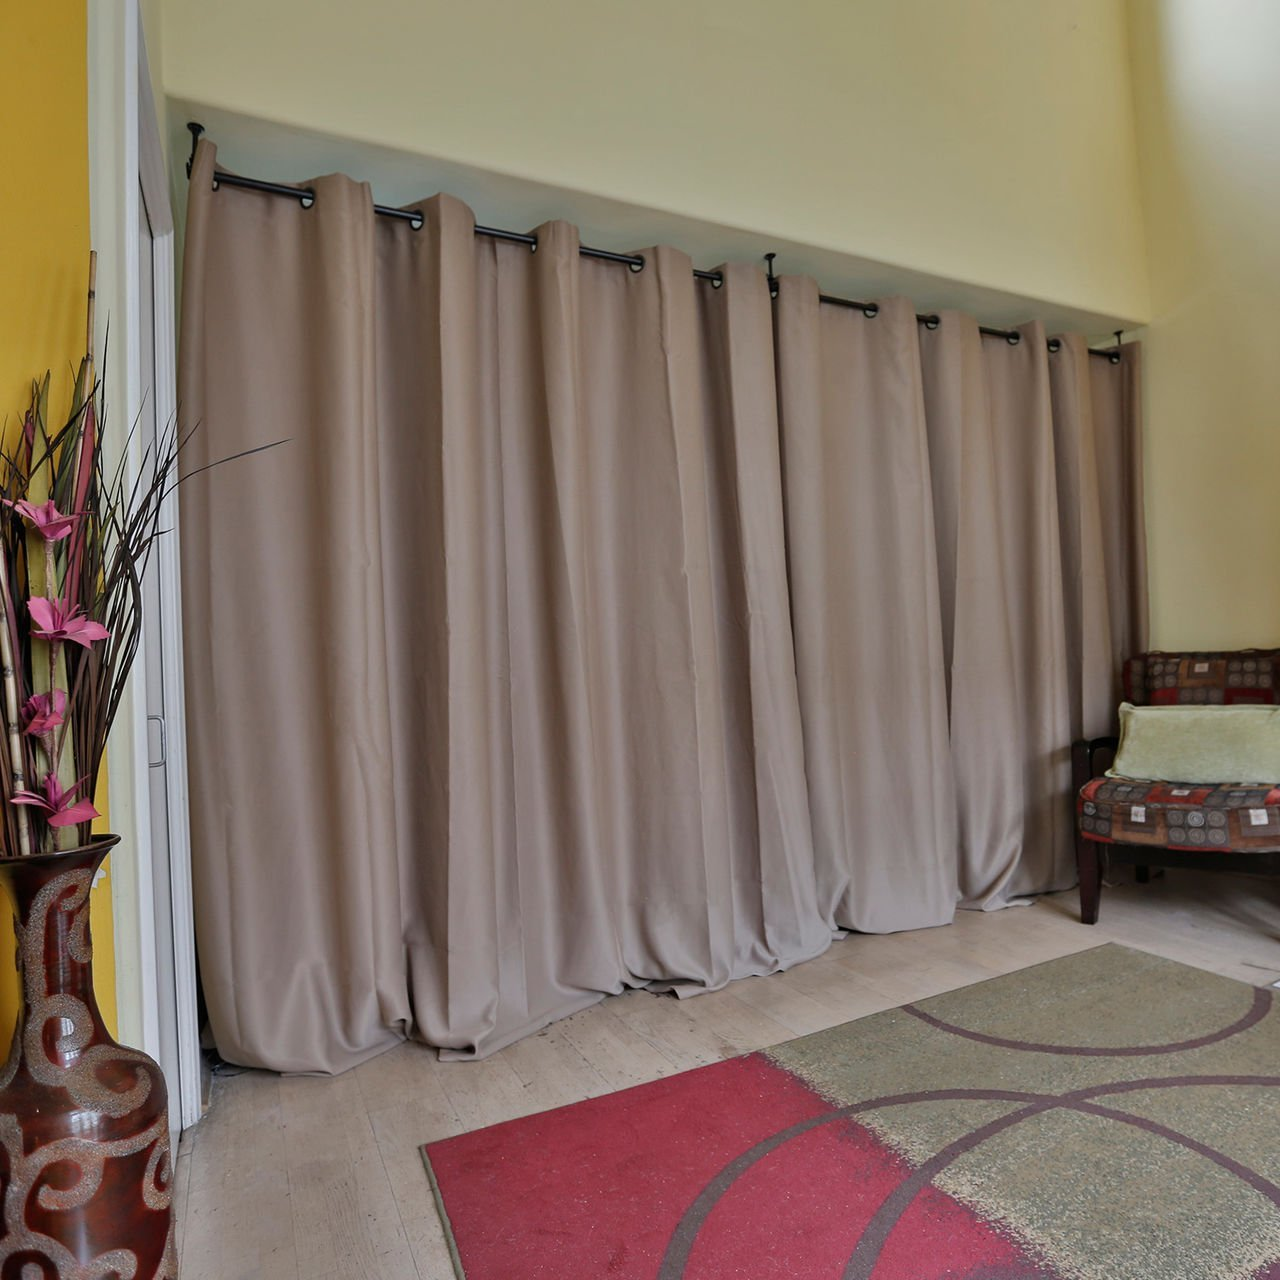 Curtain Room Dividers | Room Divider Curtains | Chain Curtain Room Divider